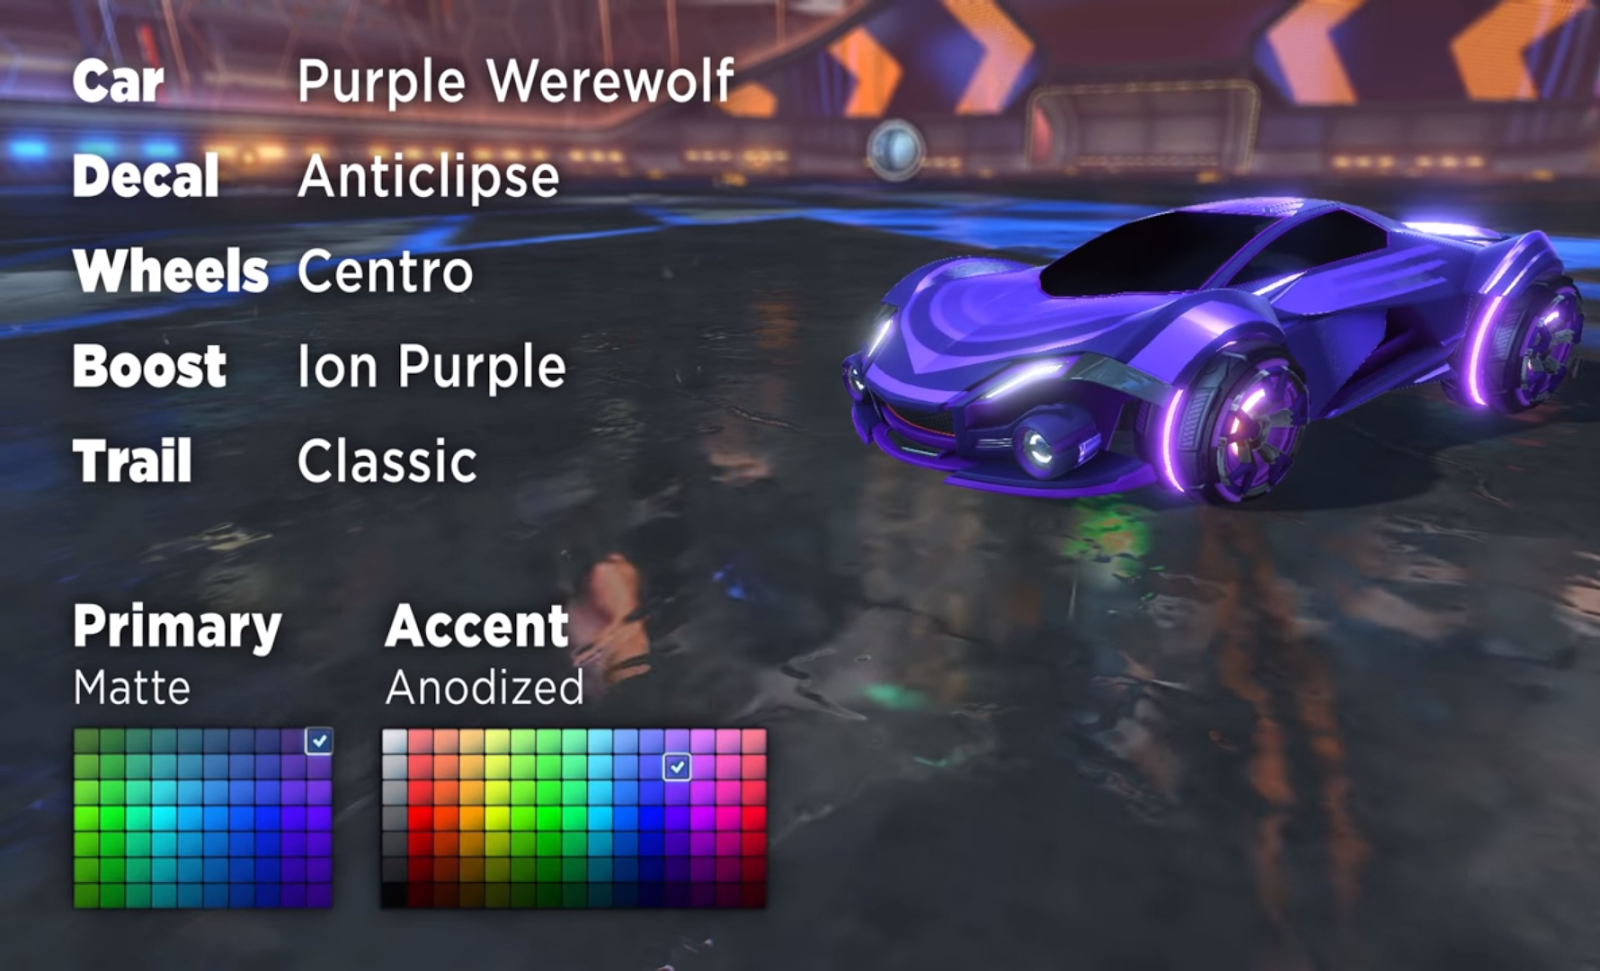 Spiksplinternieuw Amazing Rocket League car designs that cost under 5 Rocket League key NP-93